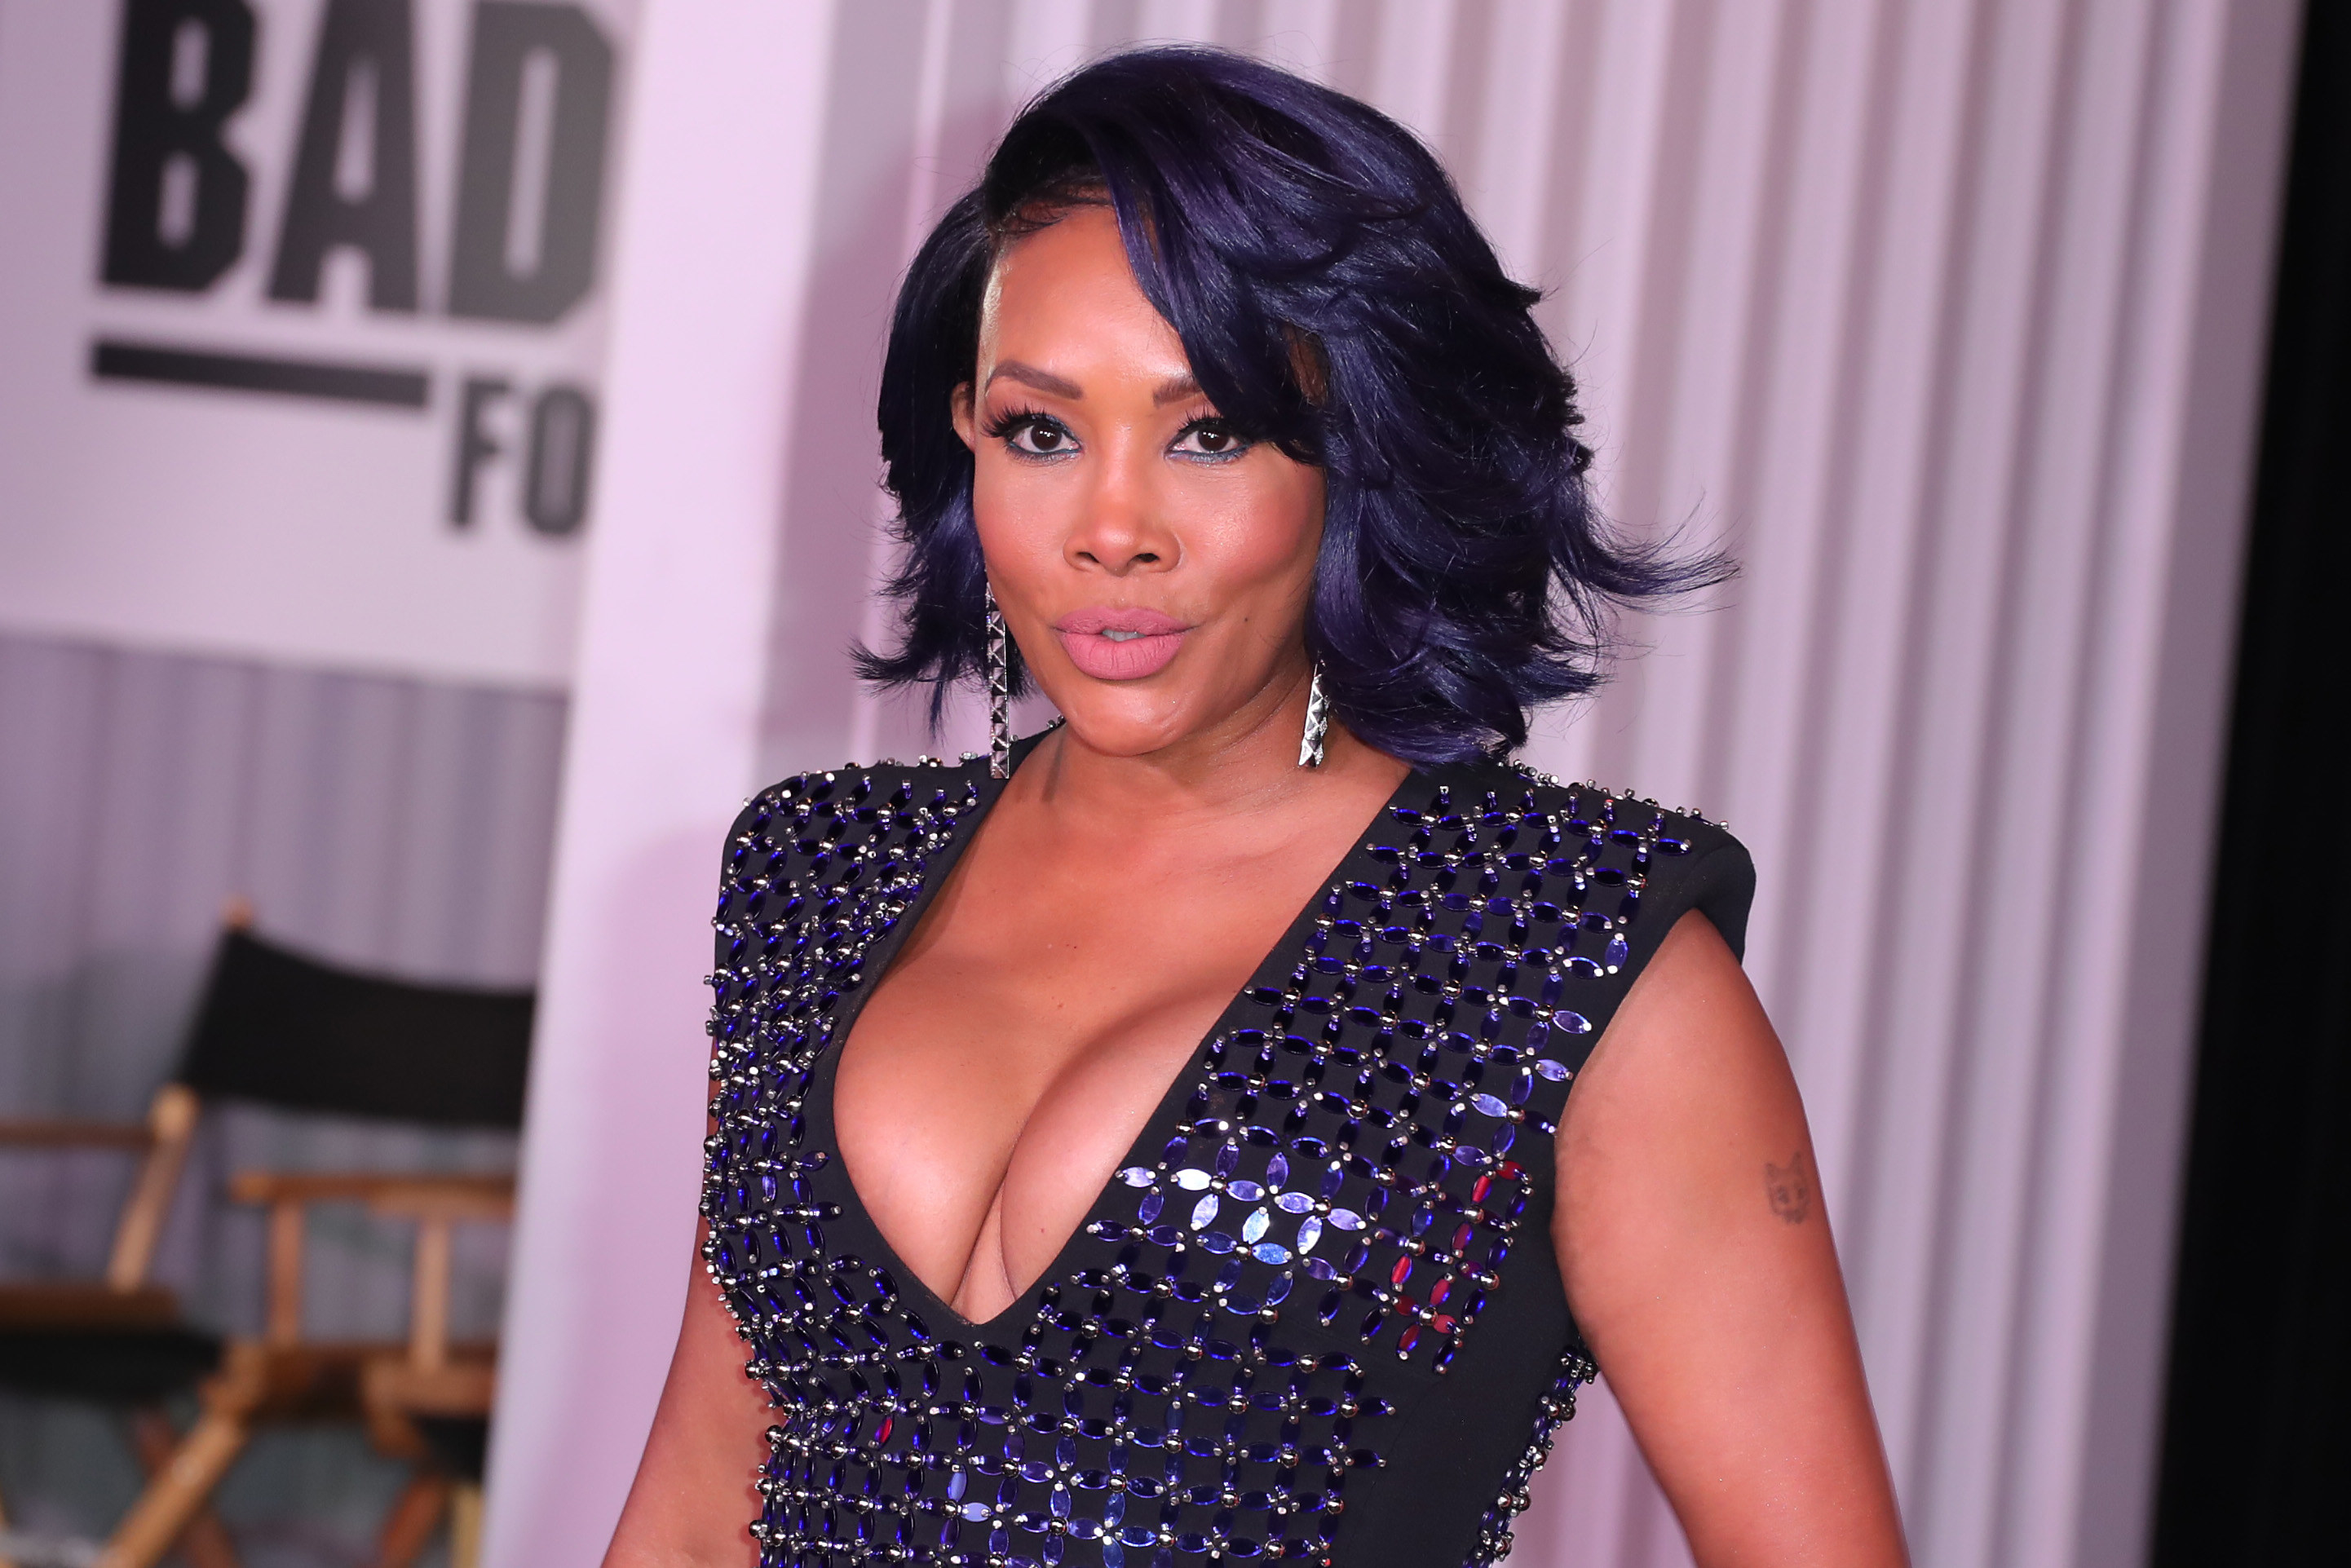 Vivica wears a black dressed with a sequined pattern